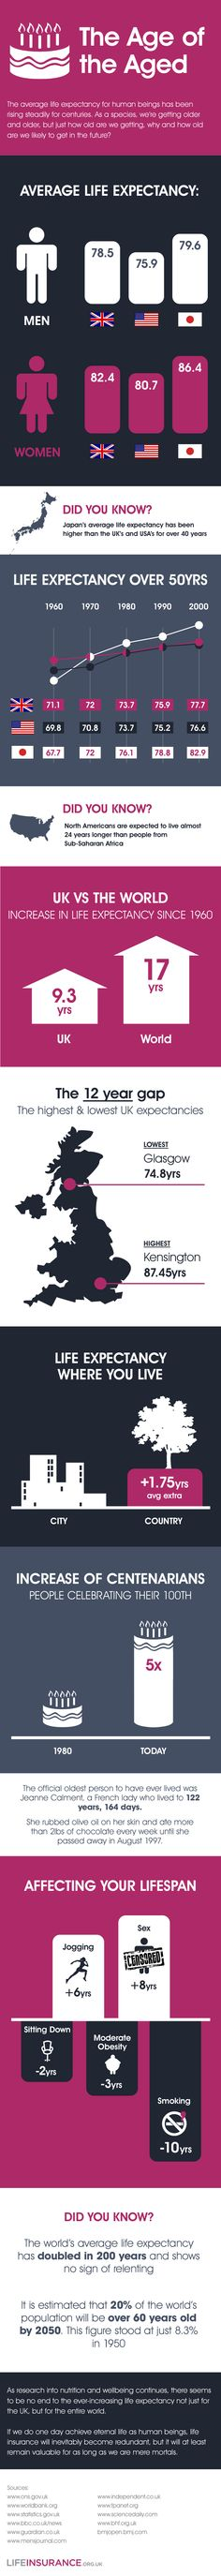 The Age of the Aged – Life Expectancy Over 50 Years